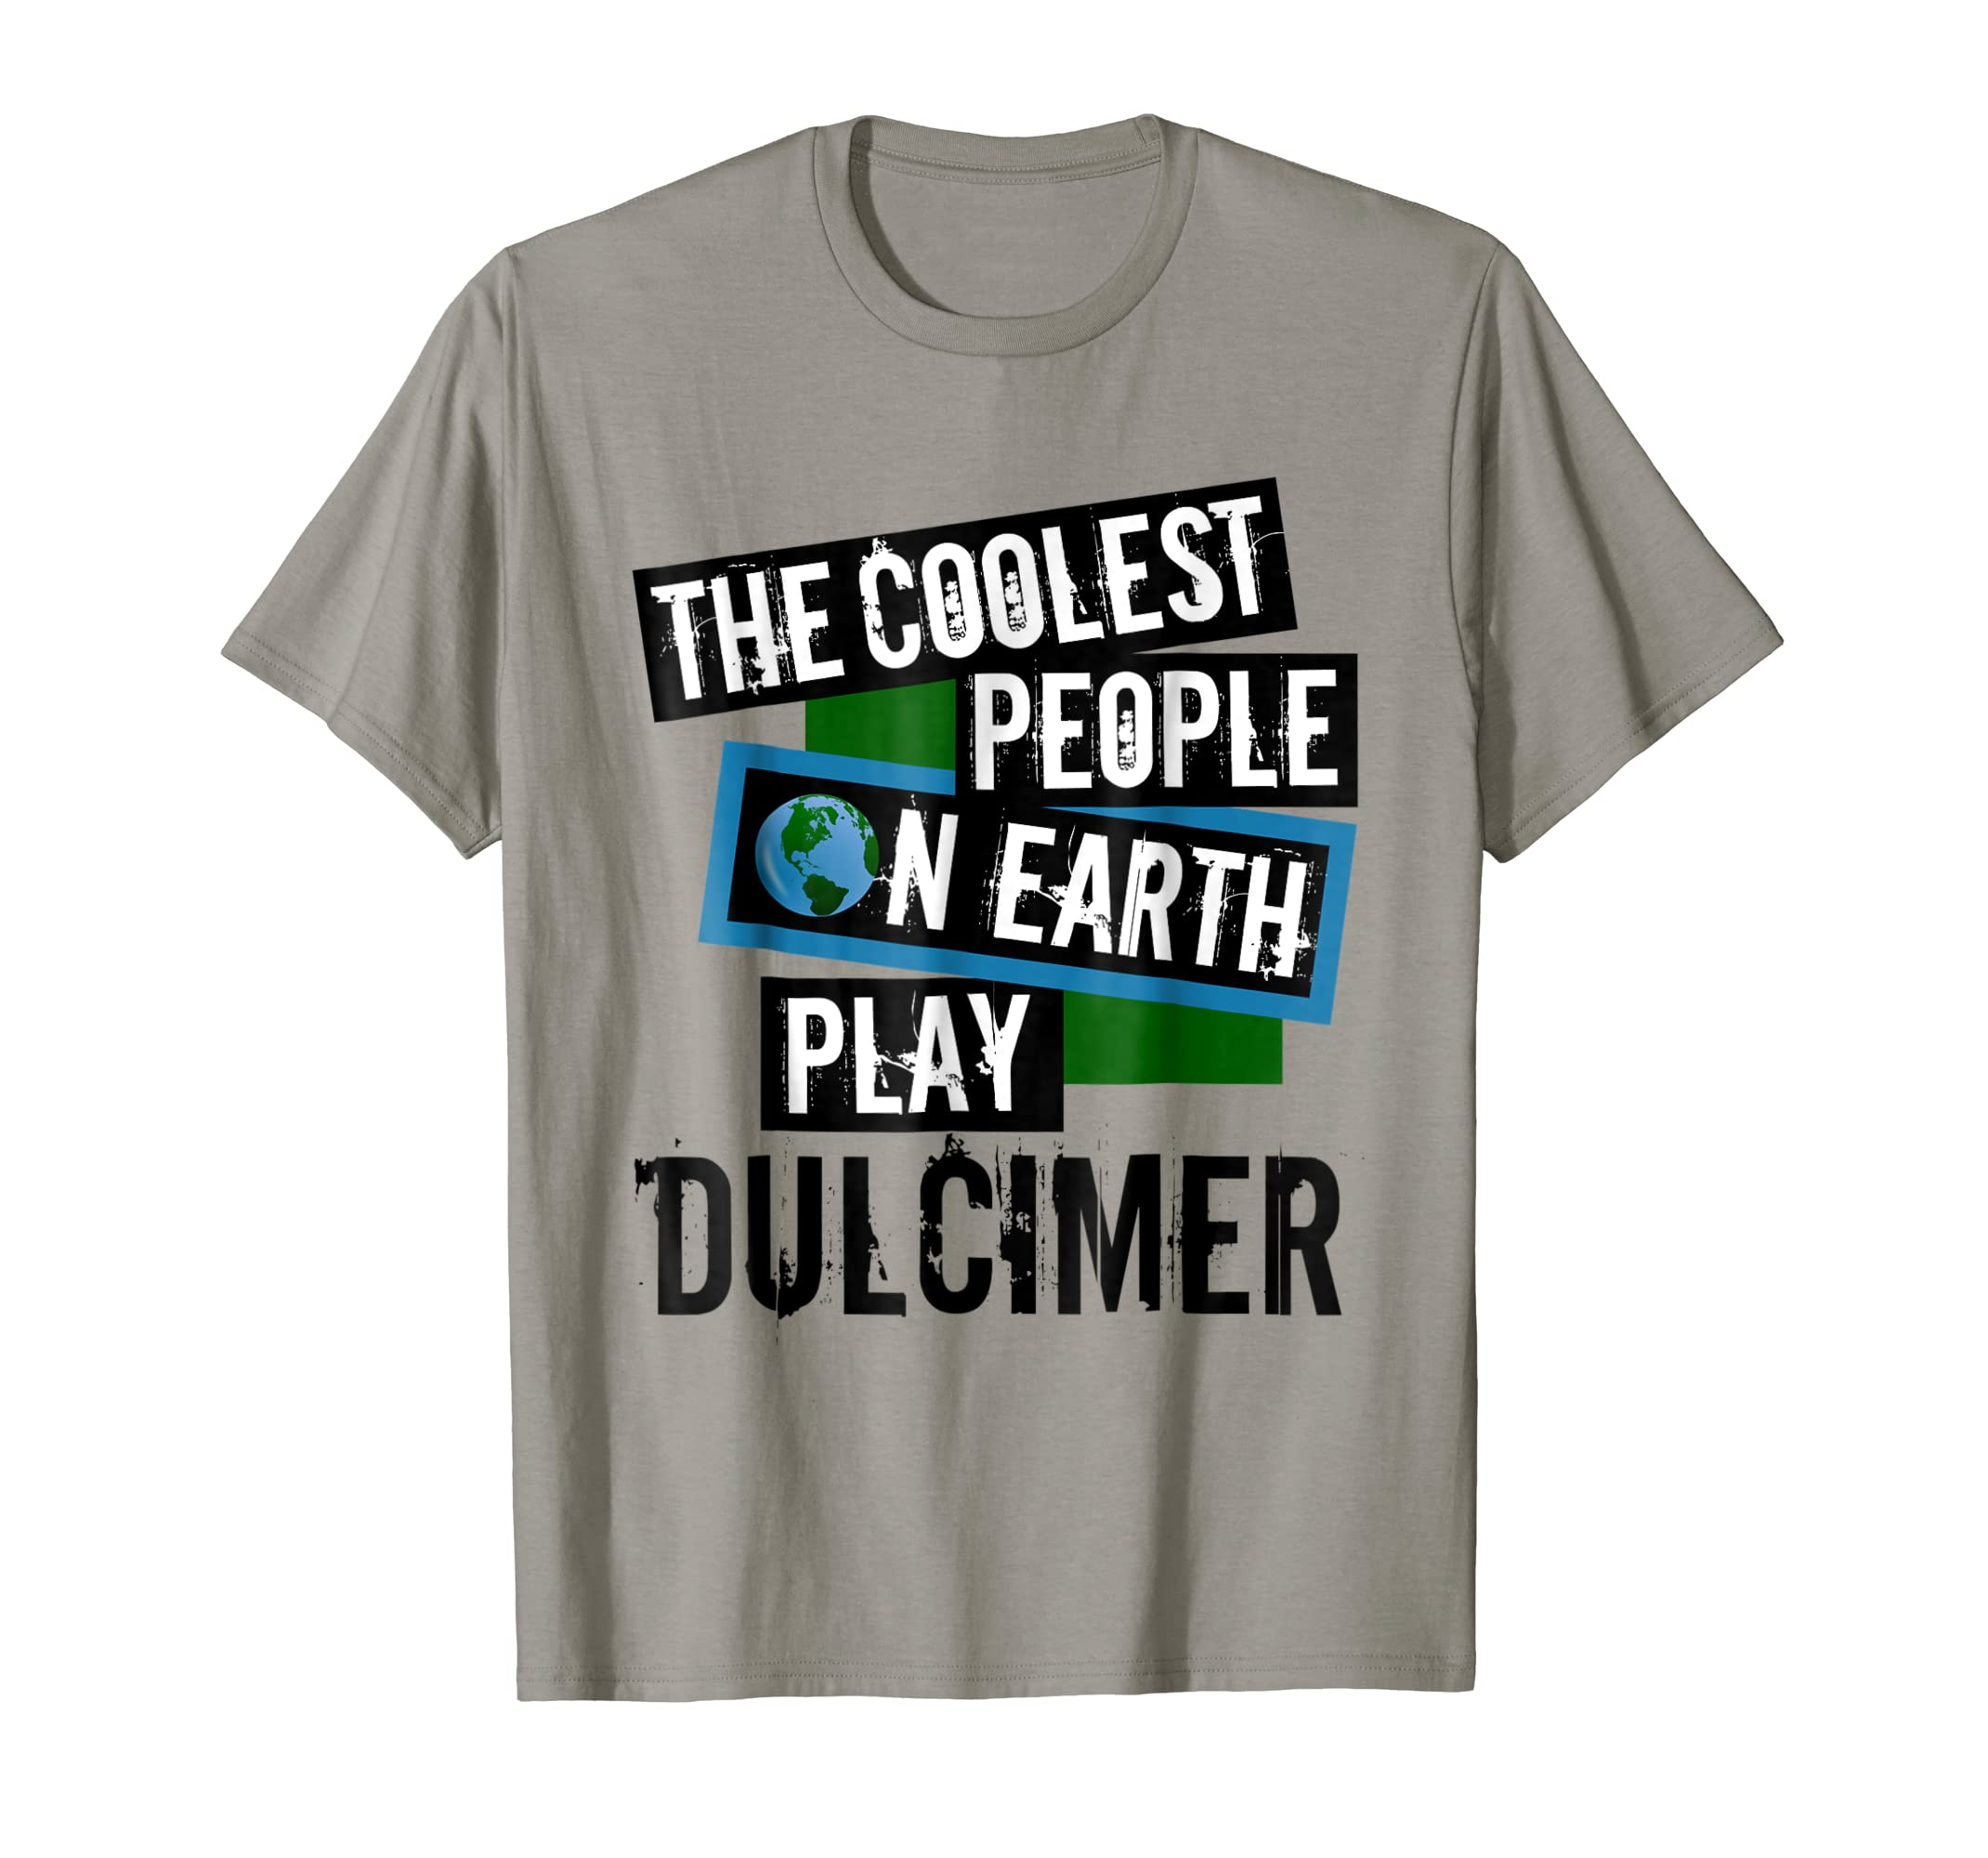 088290319 Amazon.com: The Coolest People on Earth Play Dulcimer T-Shirt: Clothing